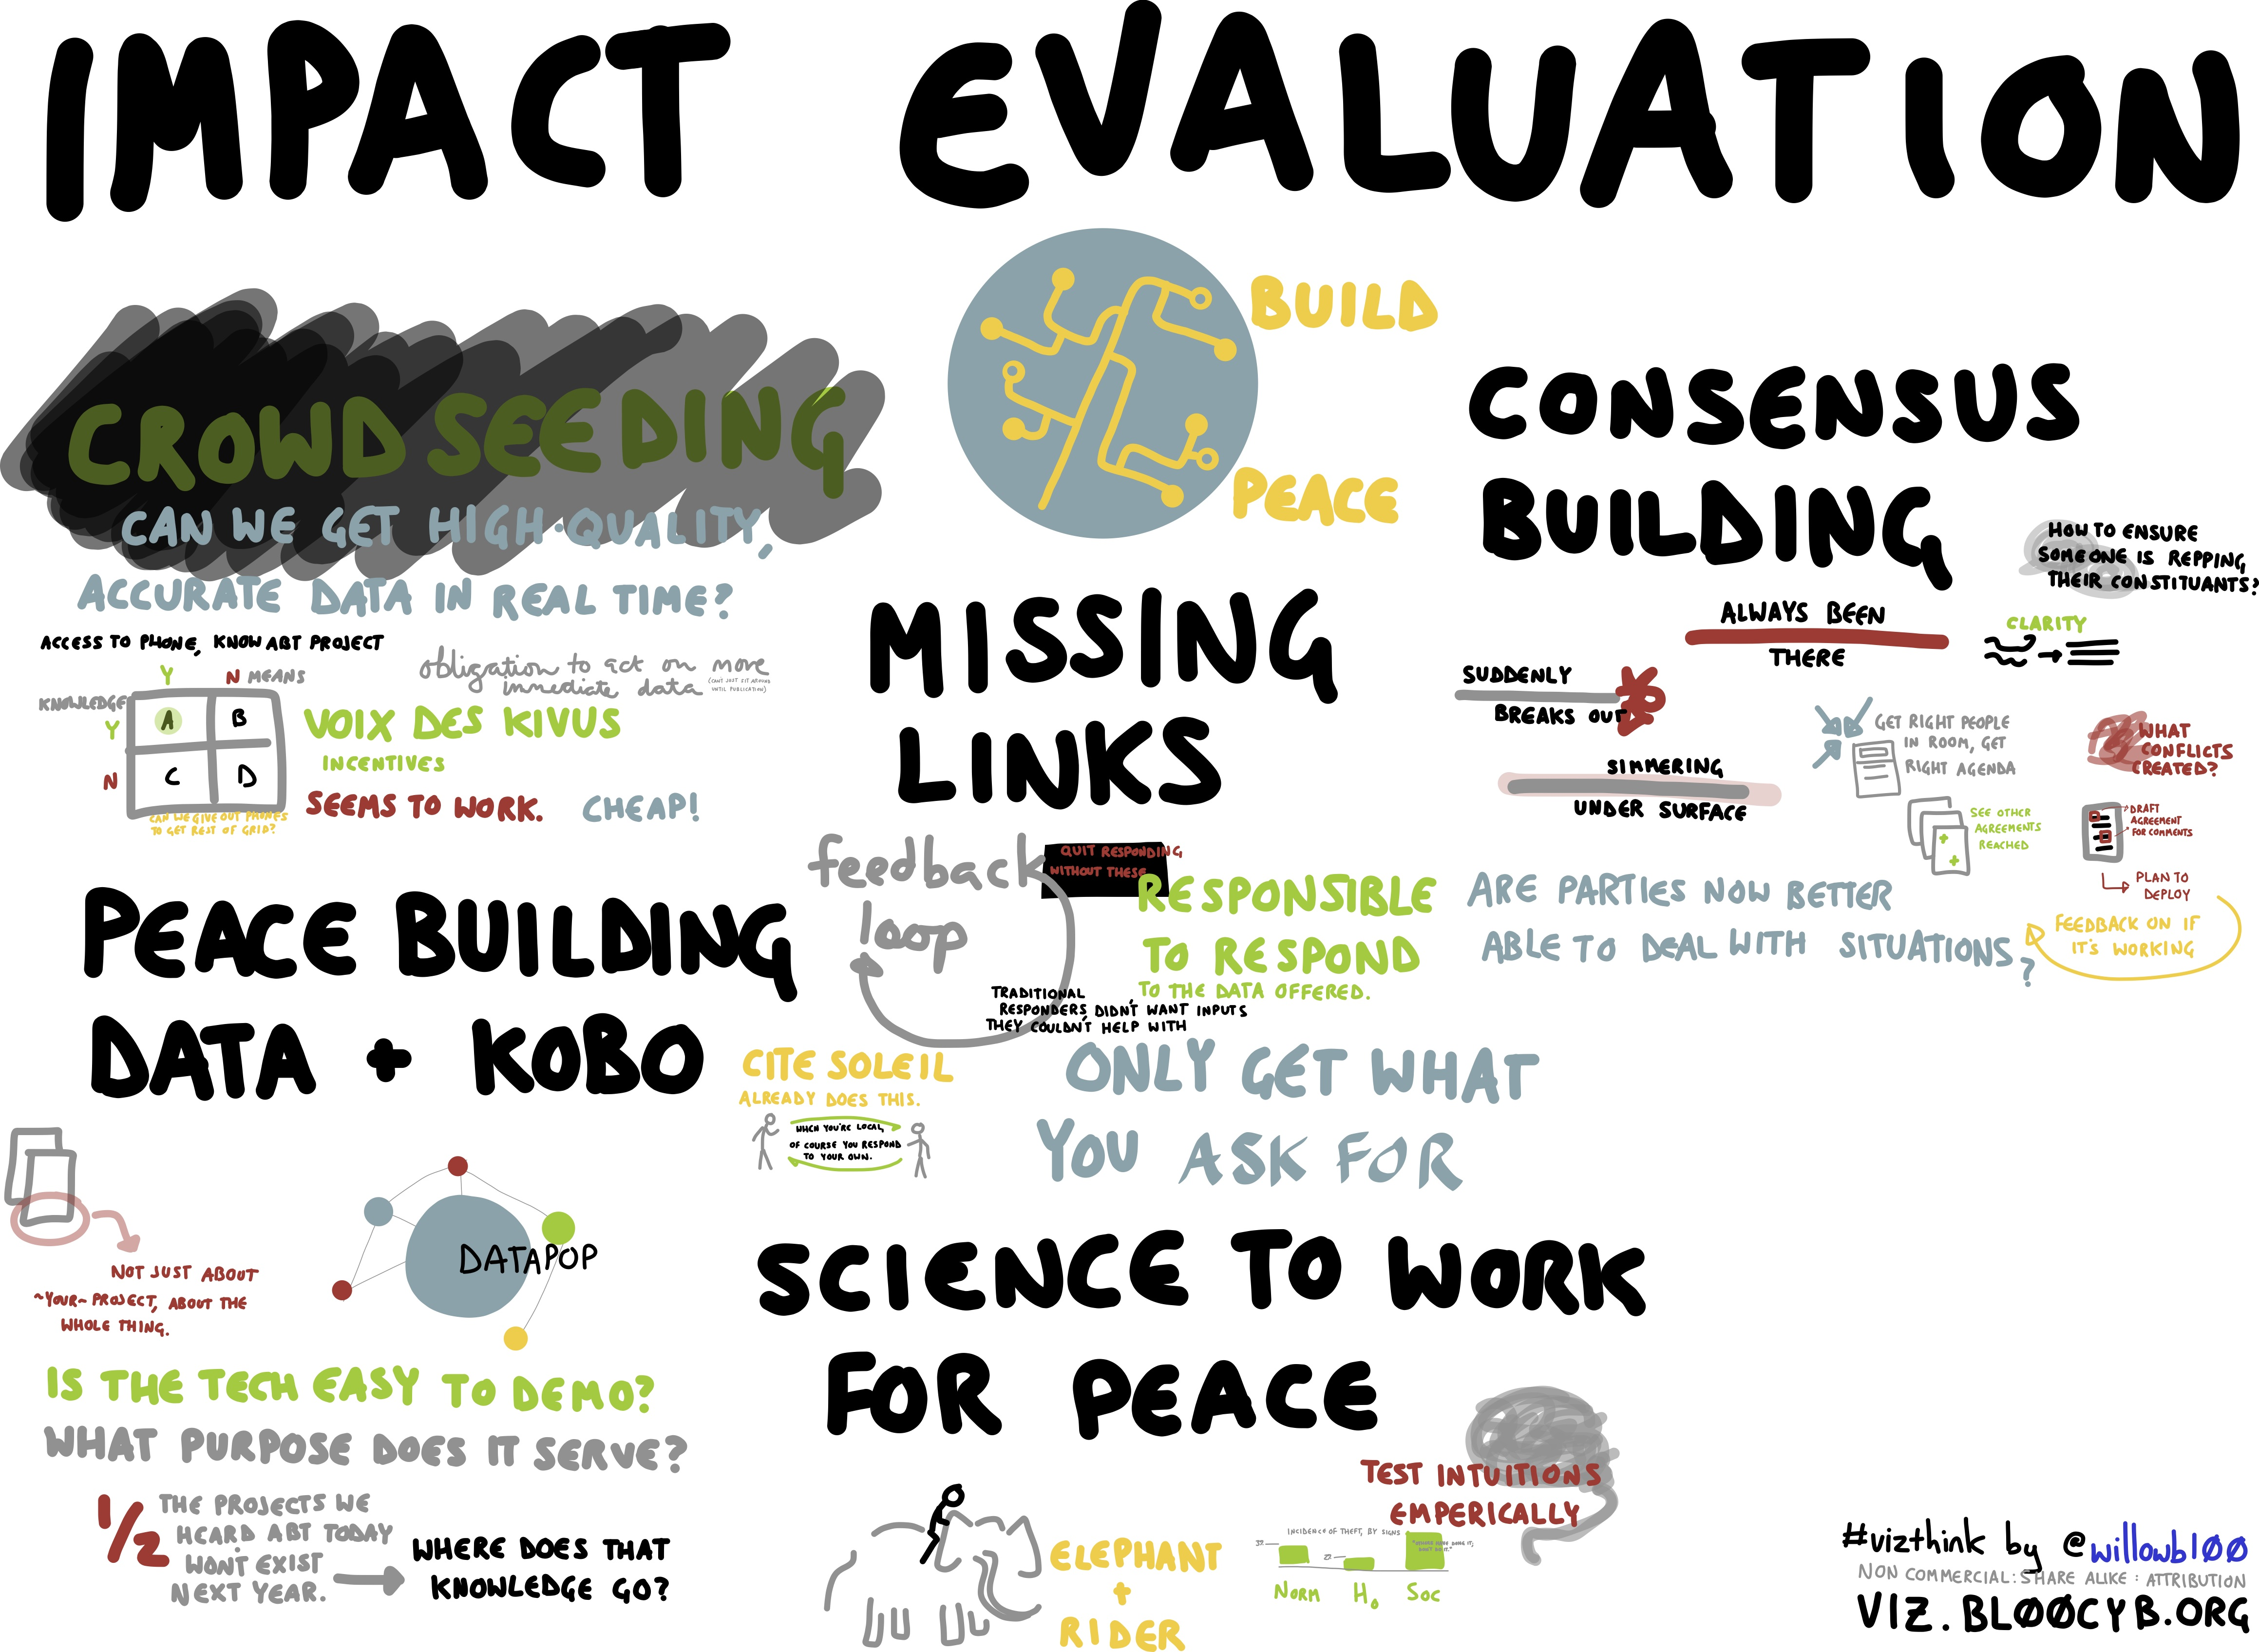 evaluation of the impact of the The journal evaluation launched in 1995, publishes fully refereed papers and aims to advance the theory, methodology and practice of evaluation we favour articles that bridge theory and practice whether through generalizable and exemplary cases or theoretical and methodological innovation.